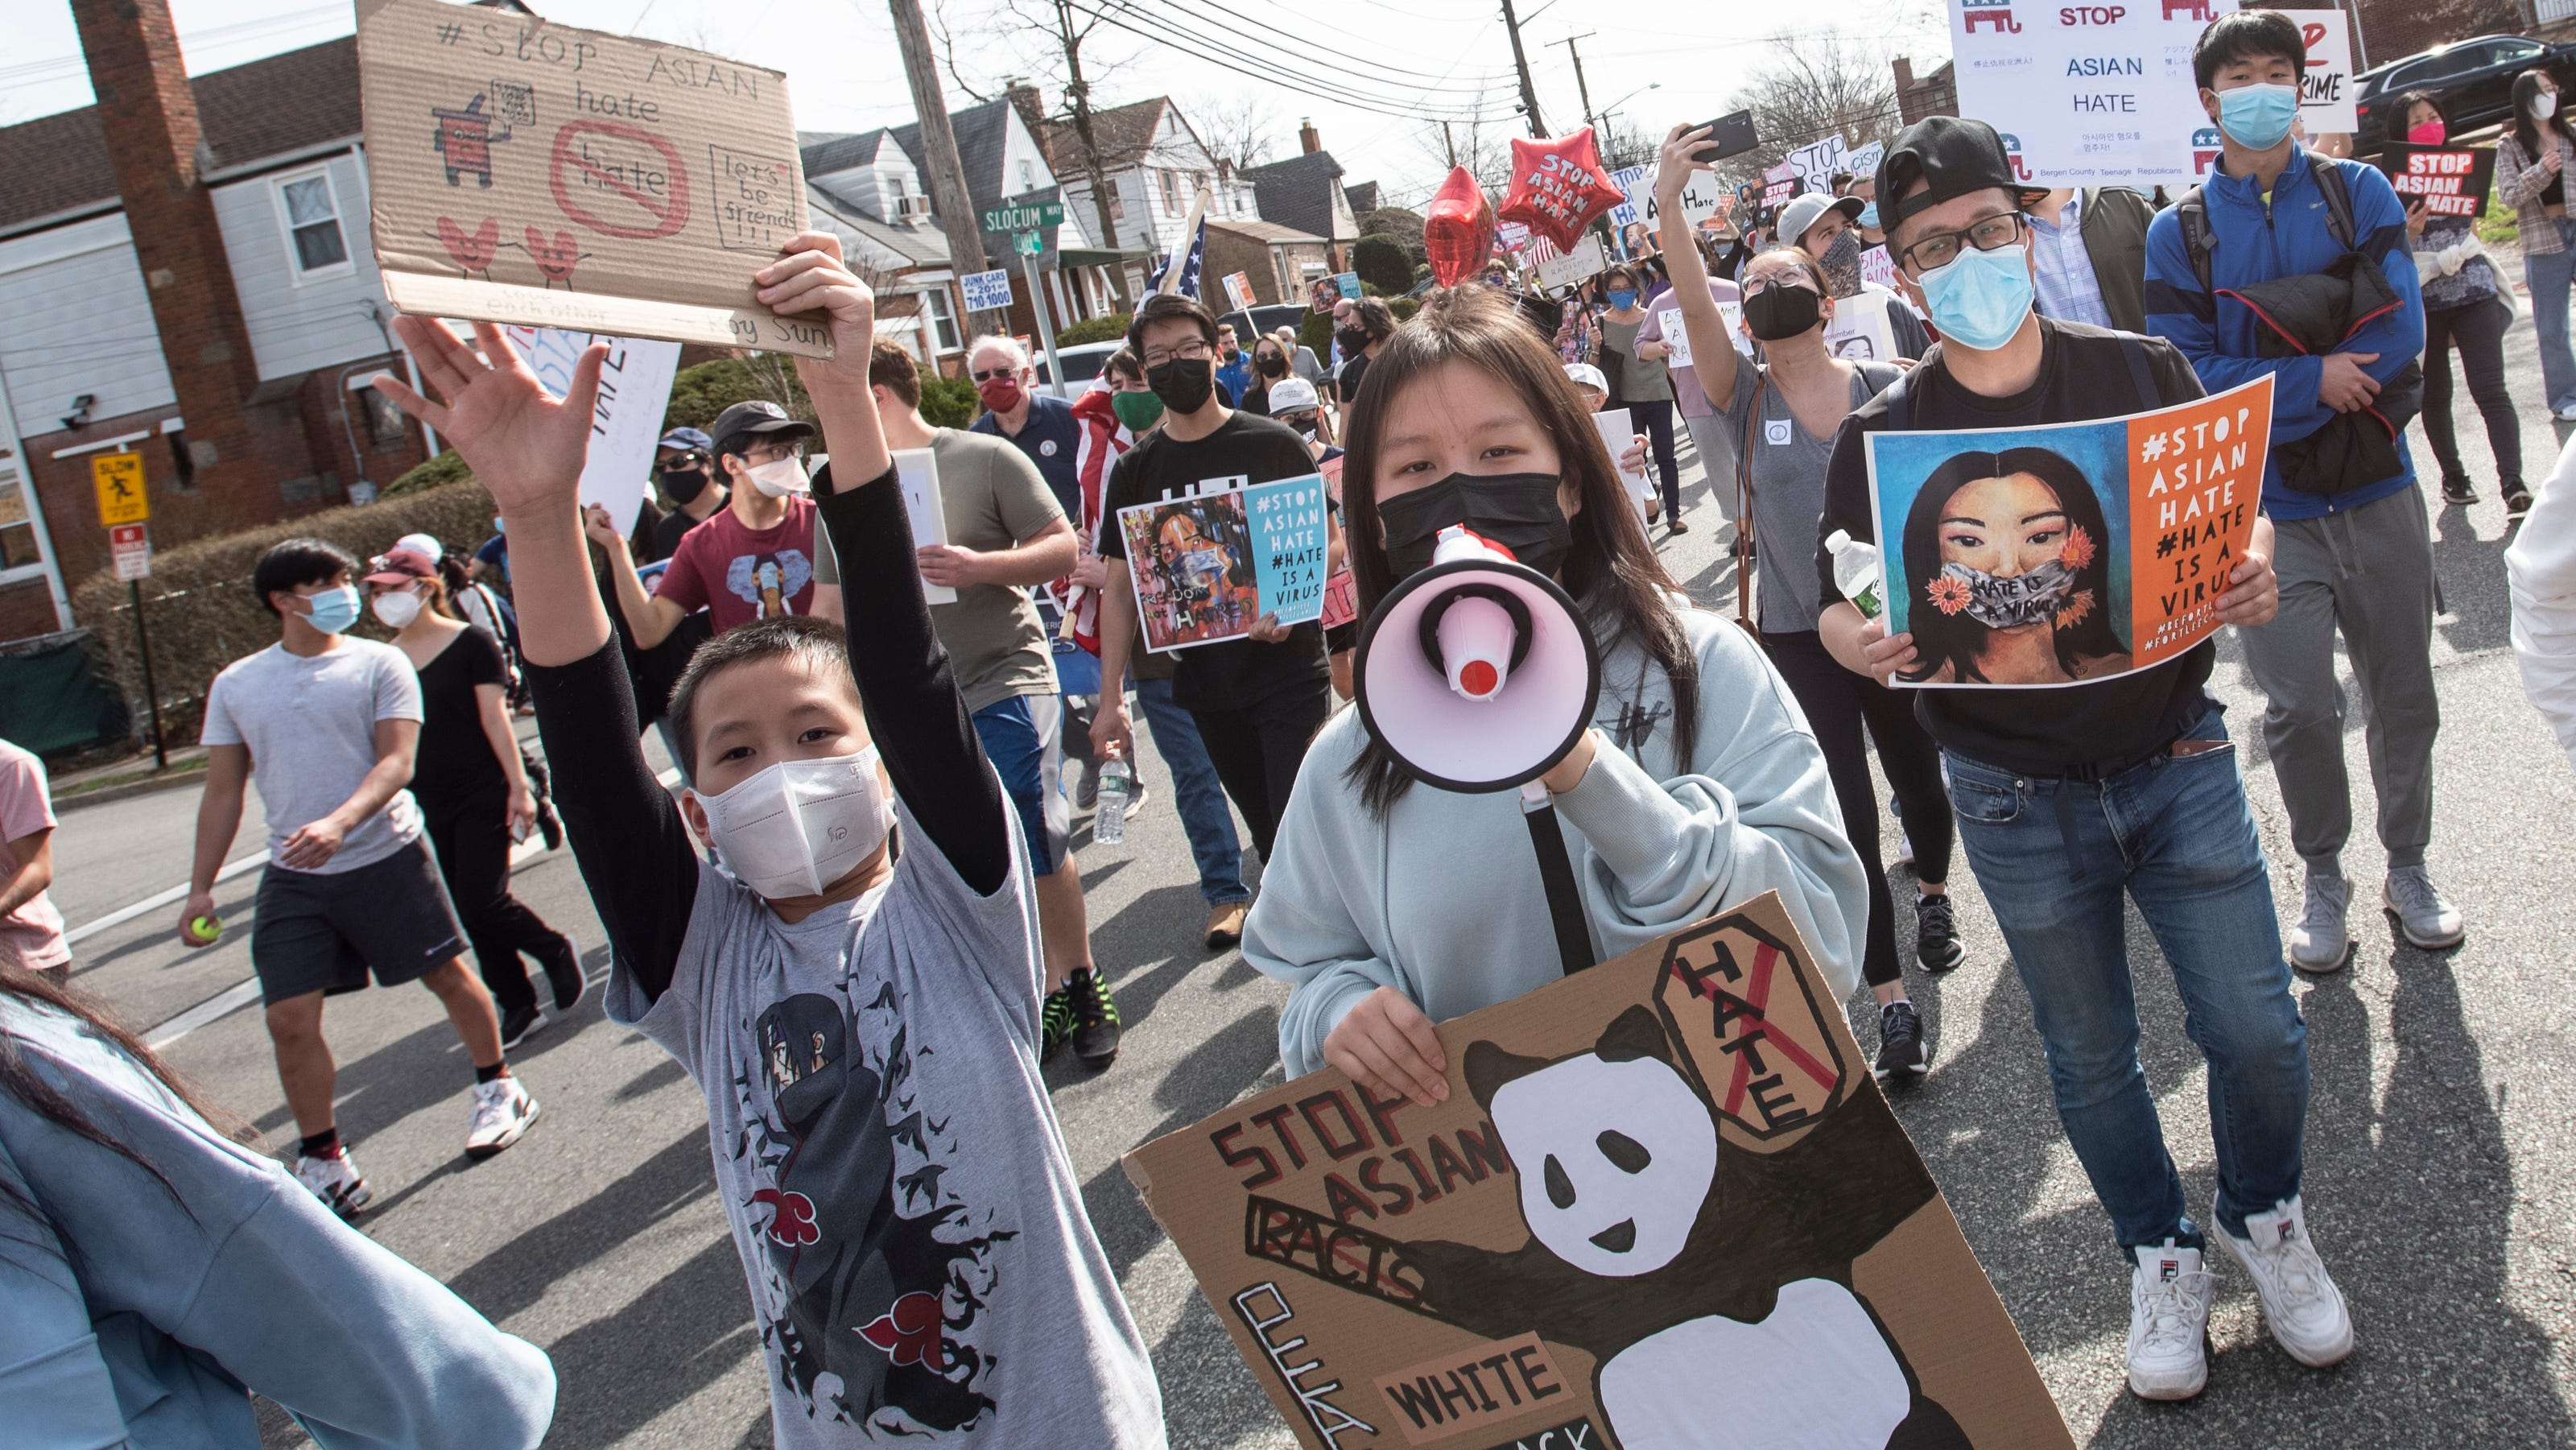 www.northjersey.com: 'We've been waiting for this moment:' Rally for Asian Americans in Fort Lee draws over 700